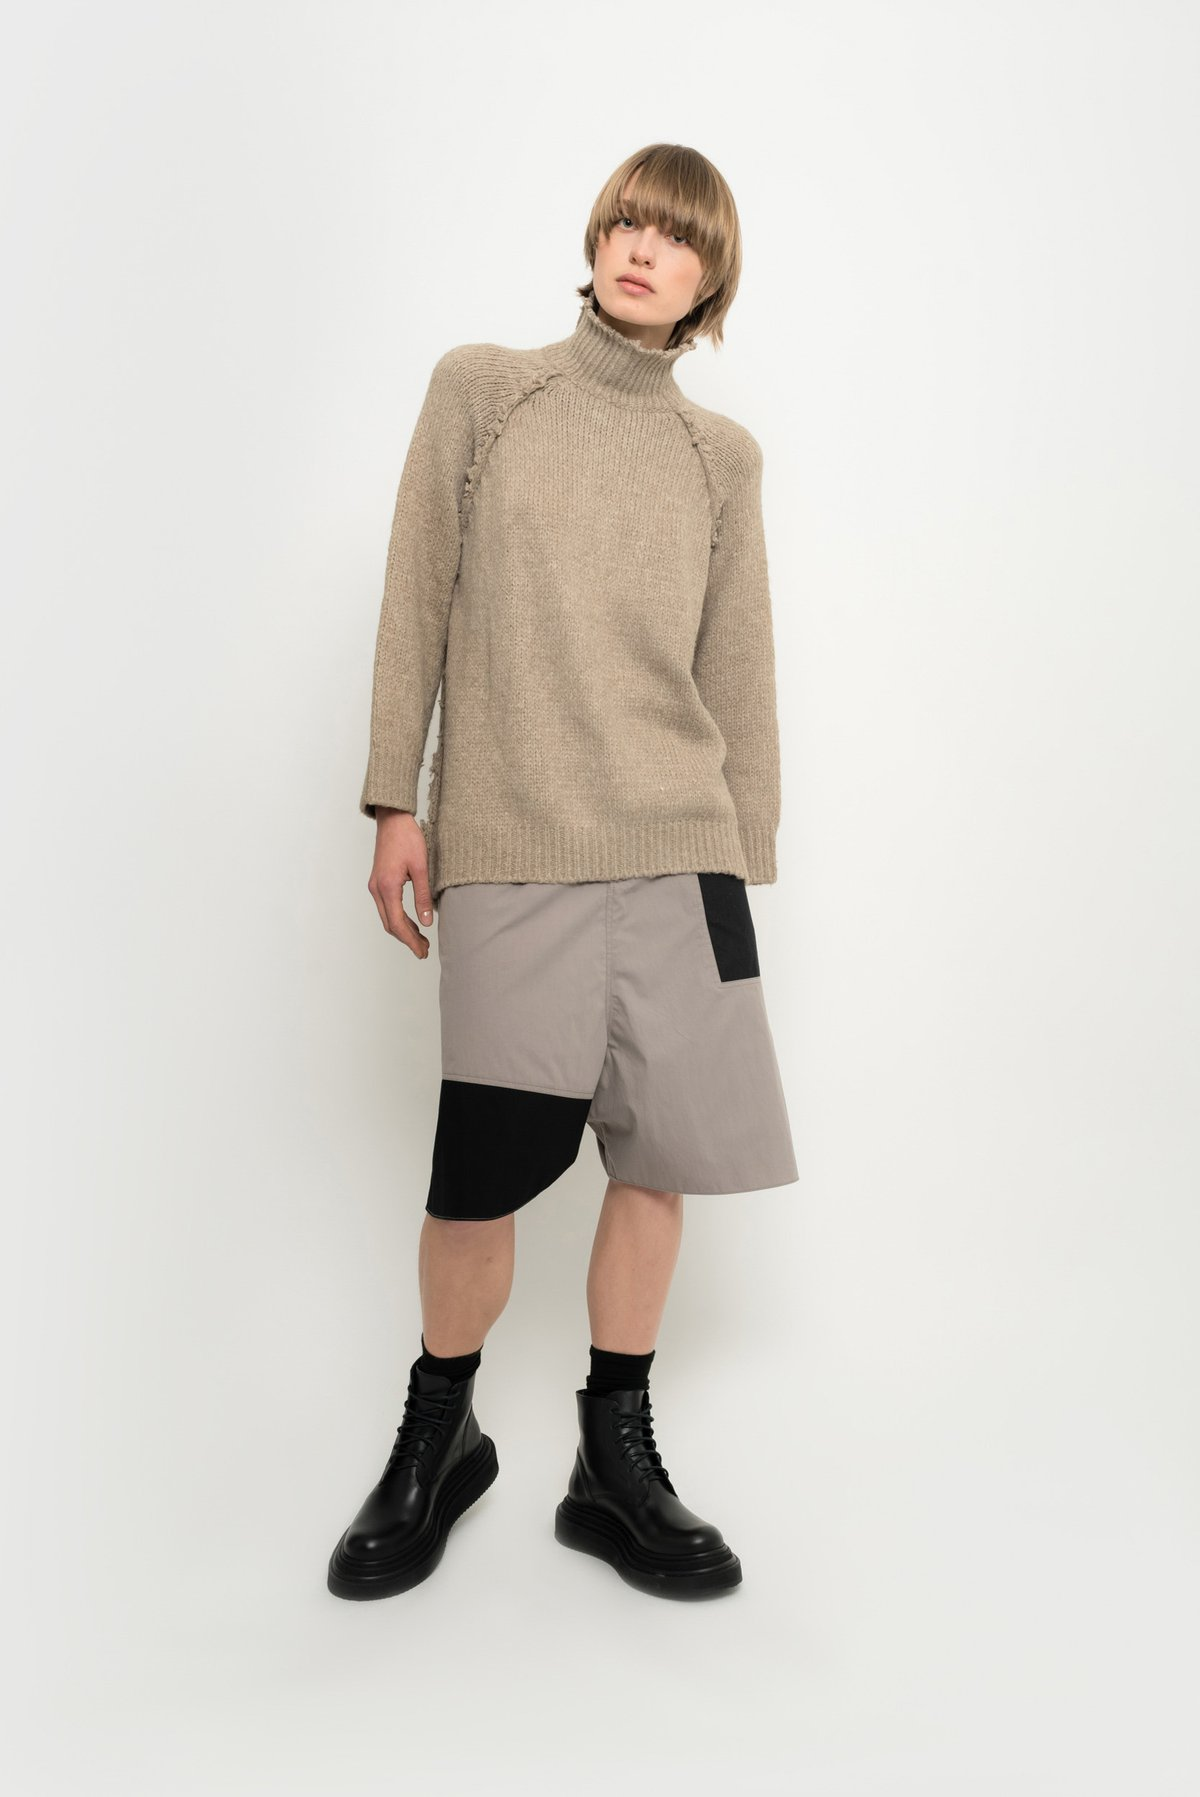 tricot suéter oversized gola alta